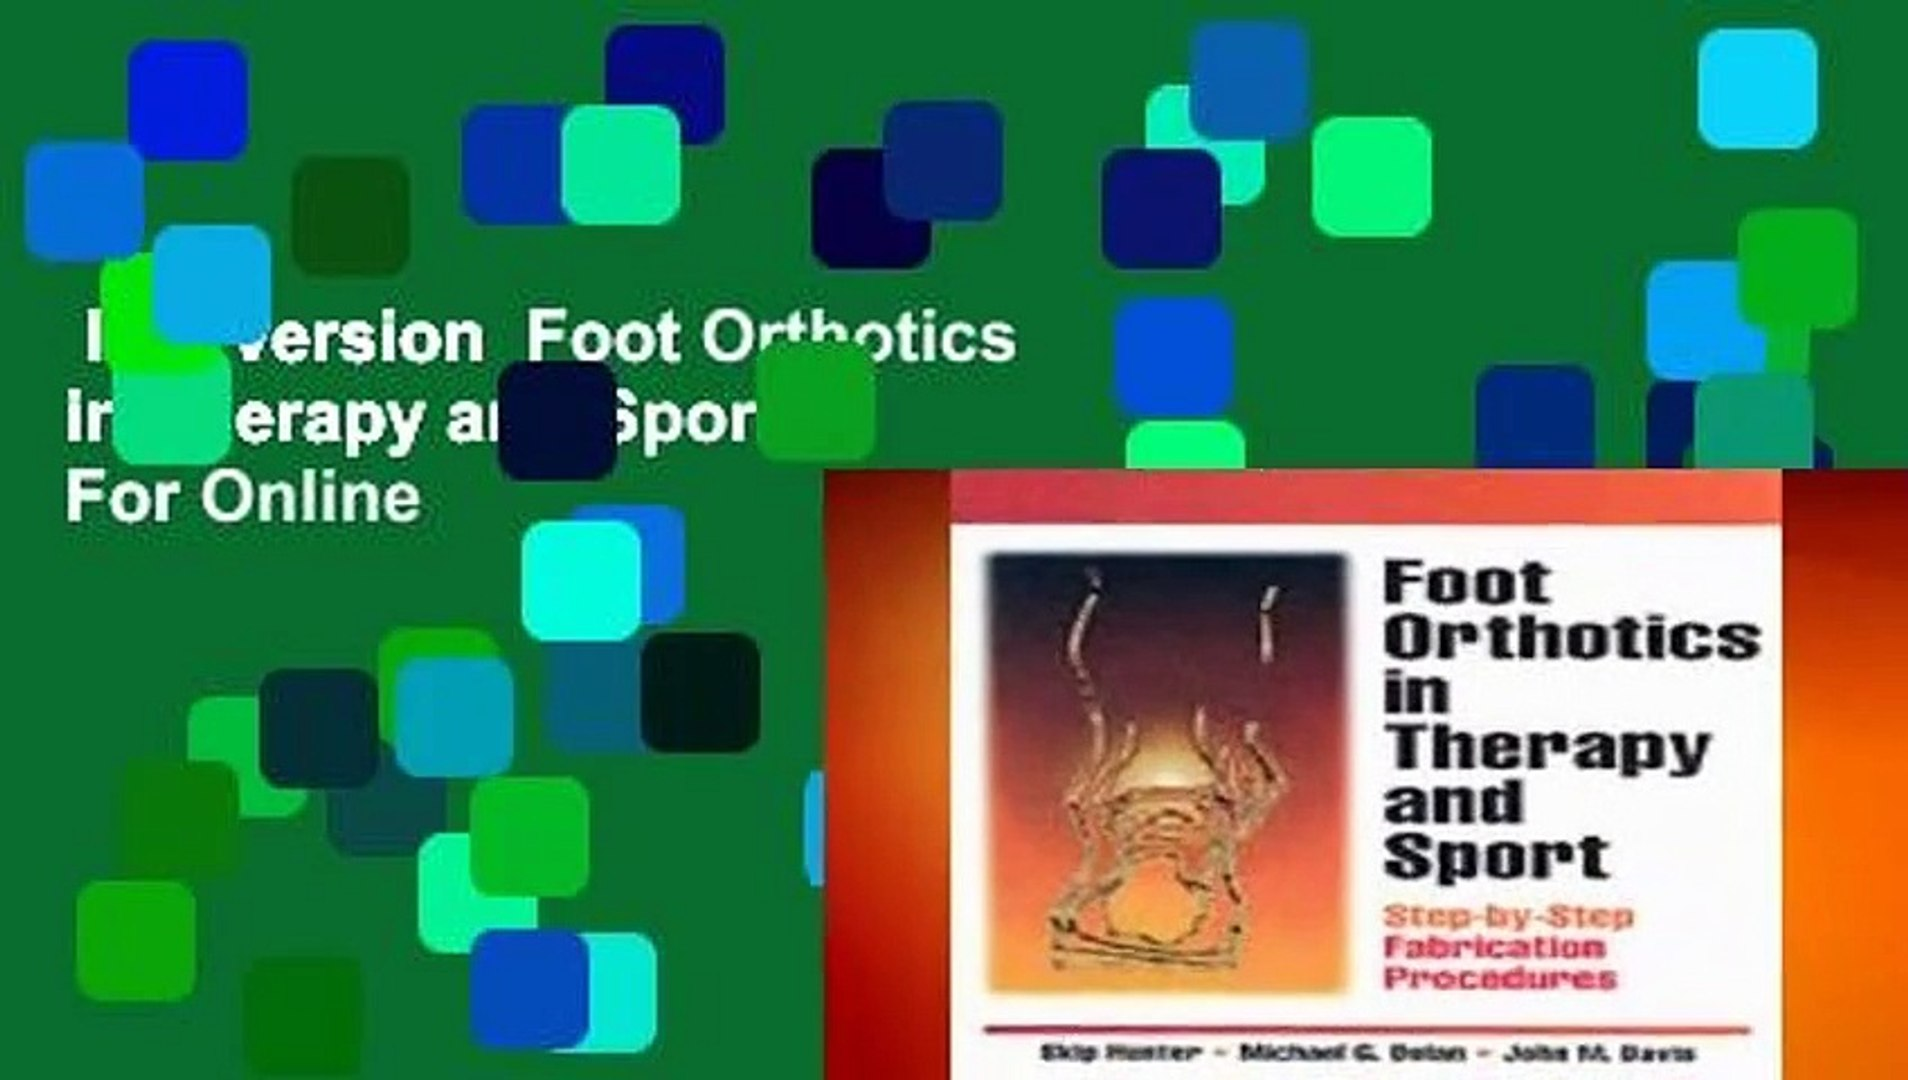 Full version  Foot Orthotics in Therapy and Sport  For Online